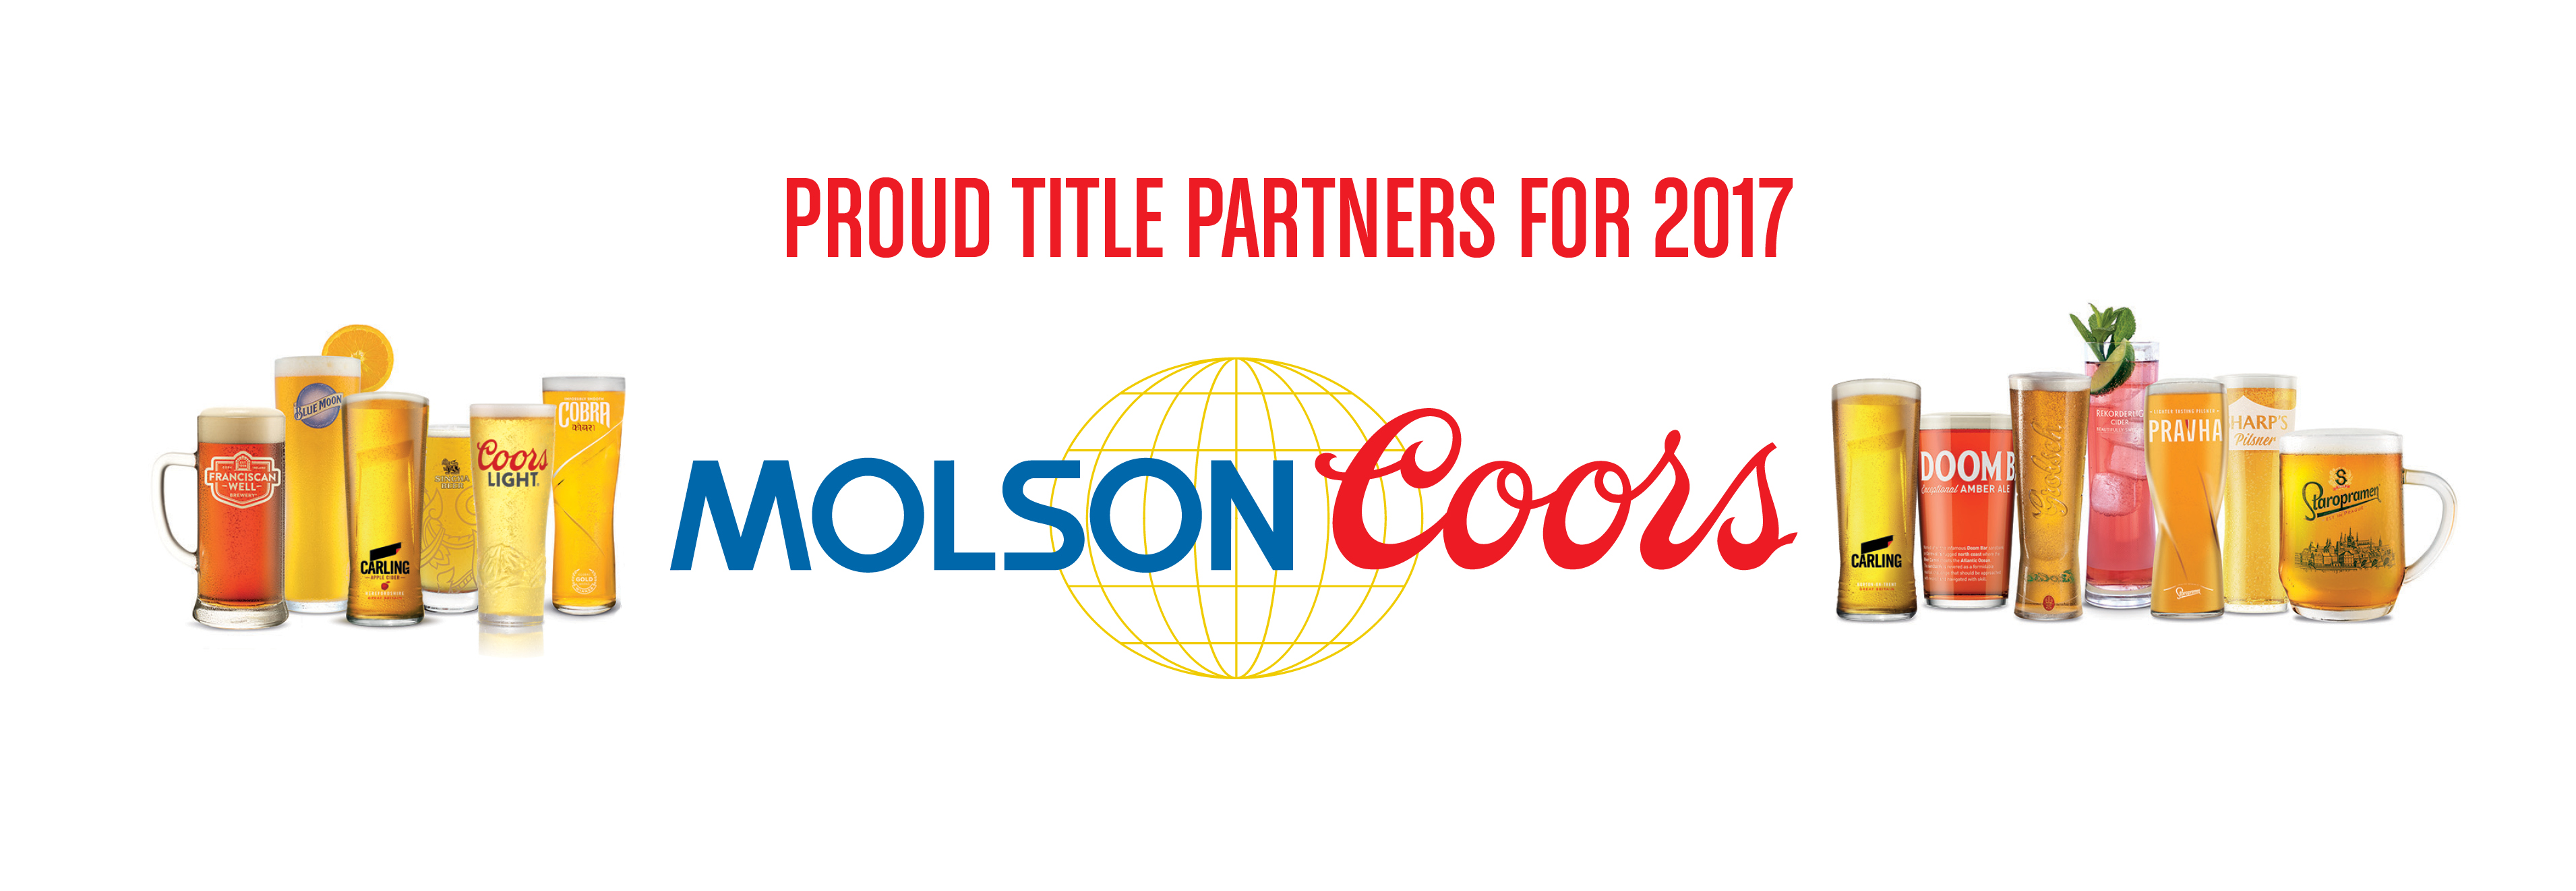 ENT_MolsonCoors_web banner new